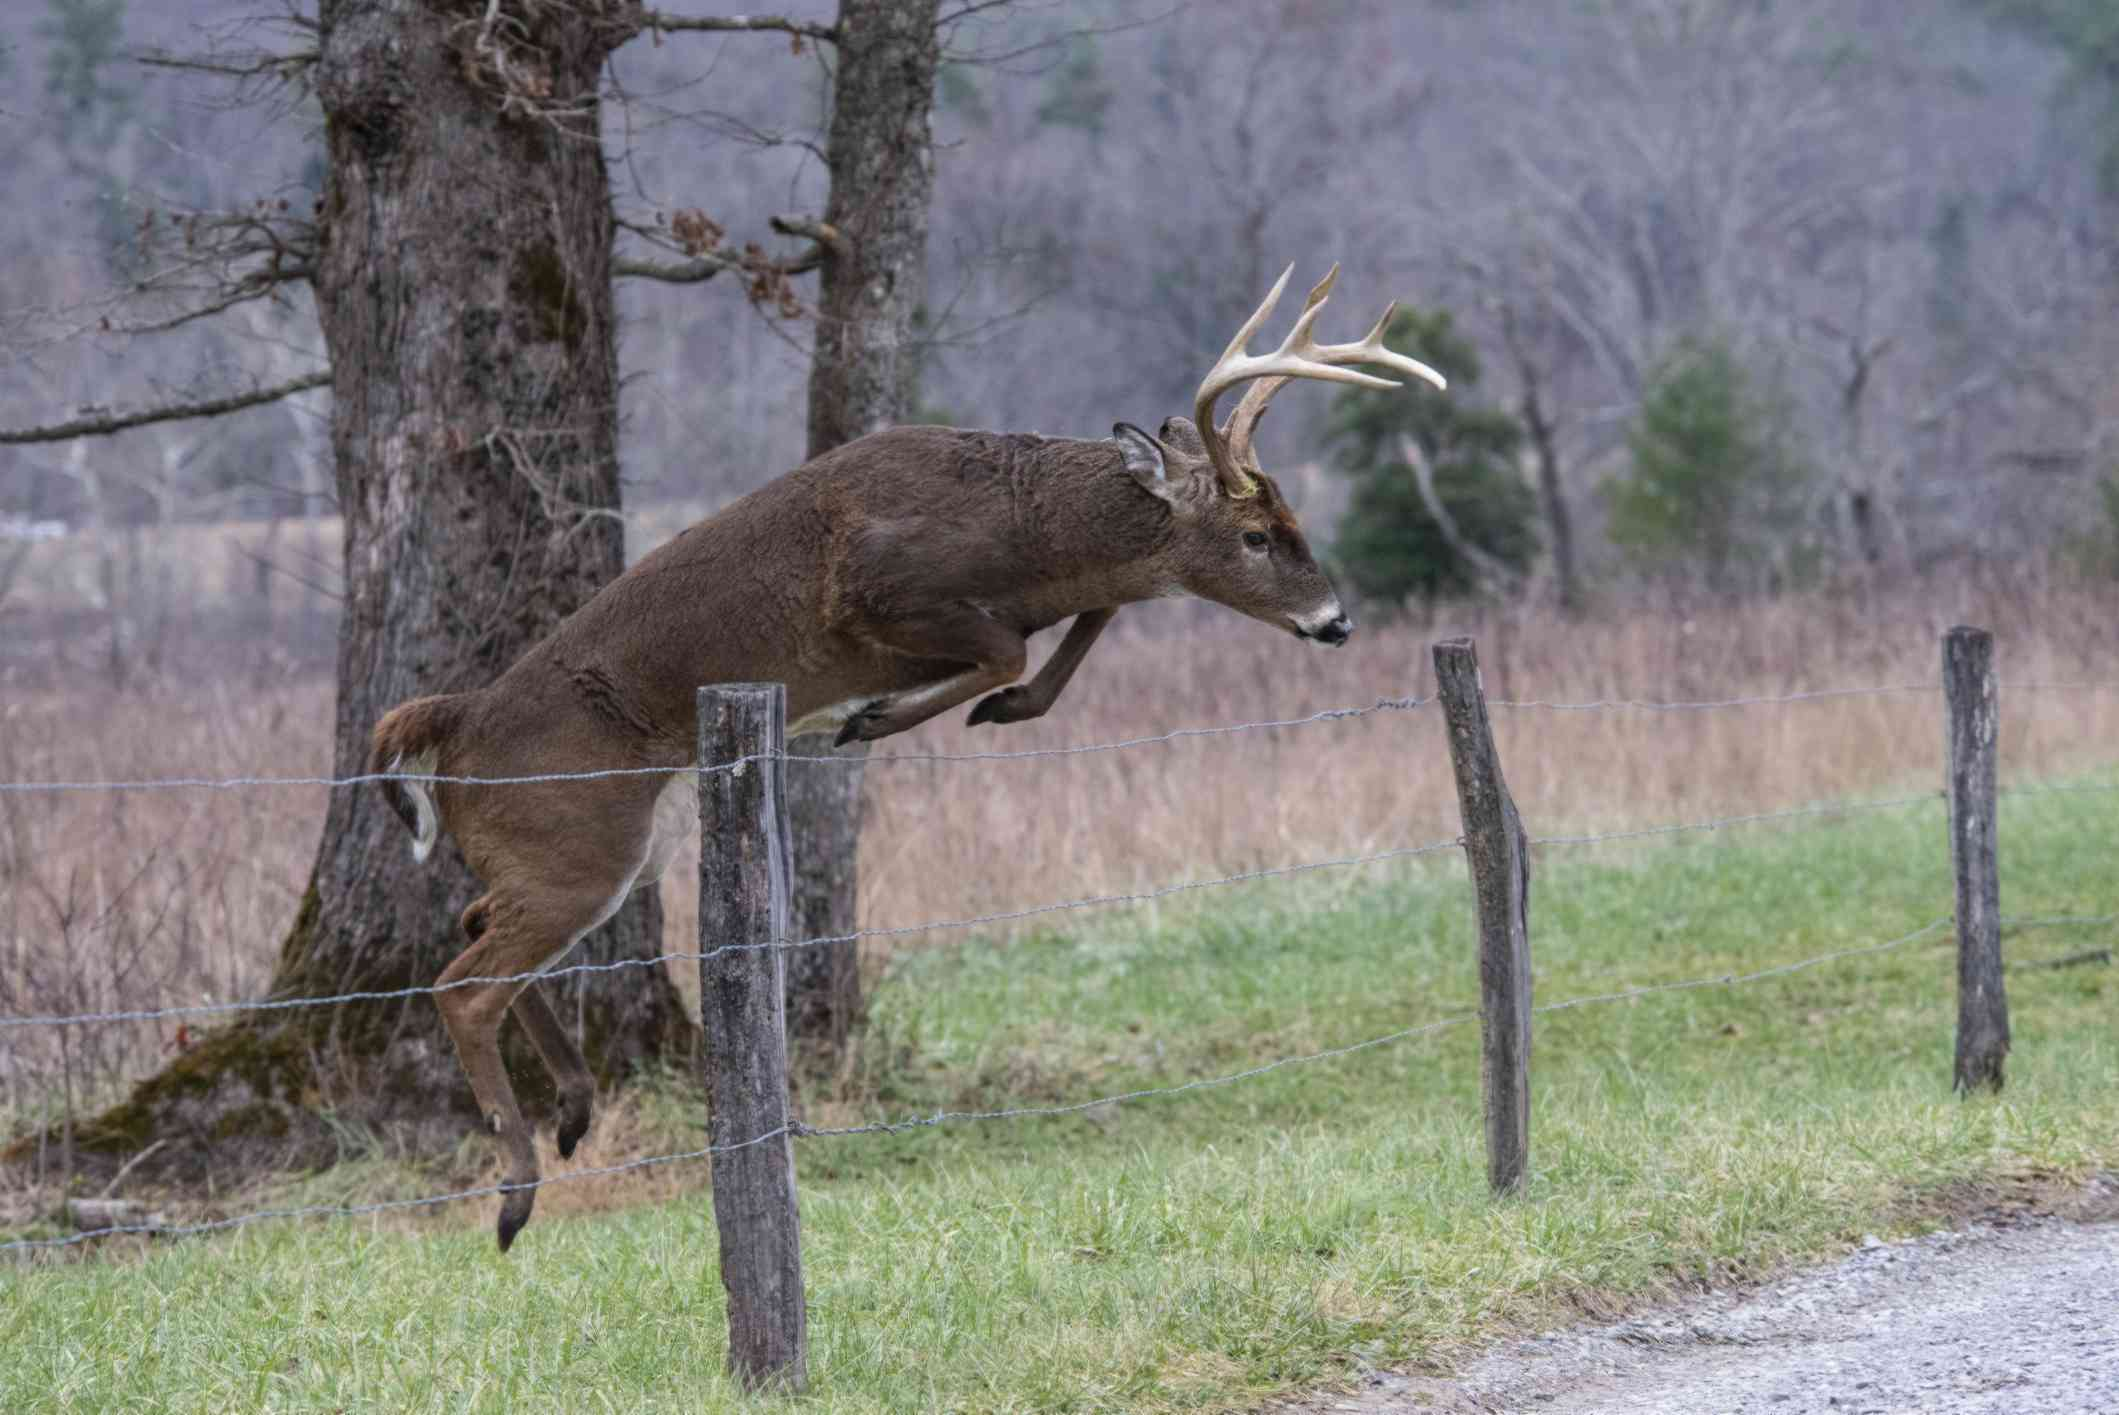 A white-tailed deer buck jumping over a tall fence